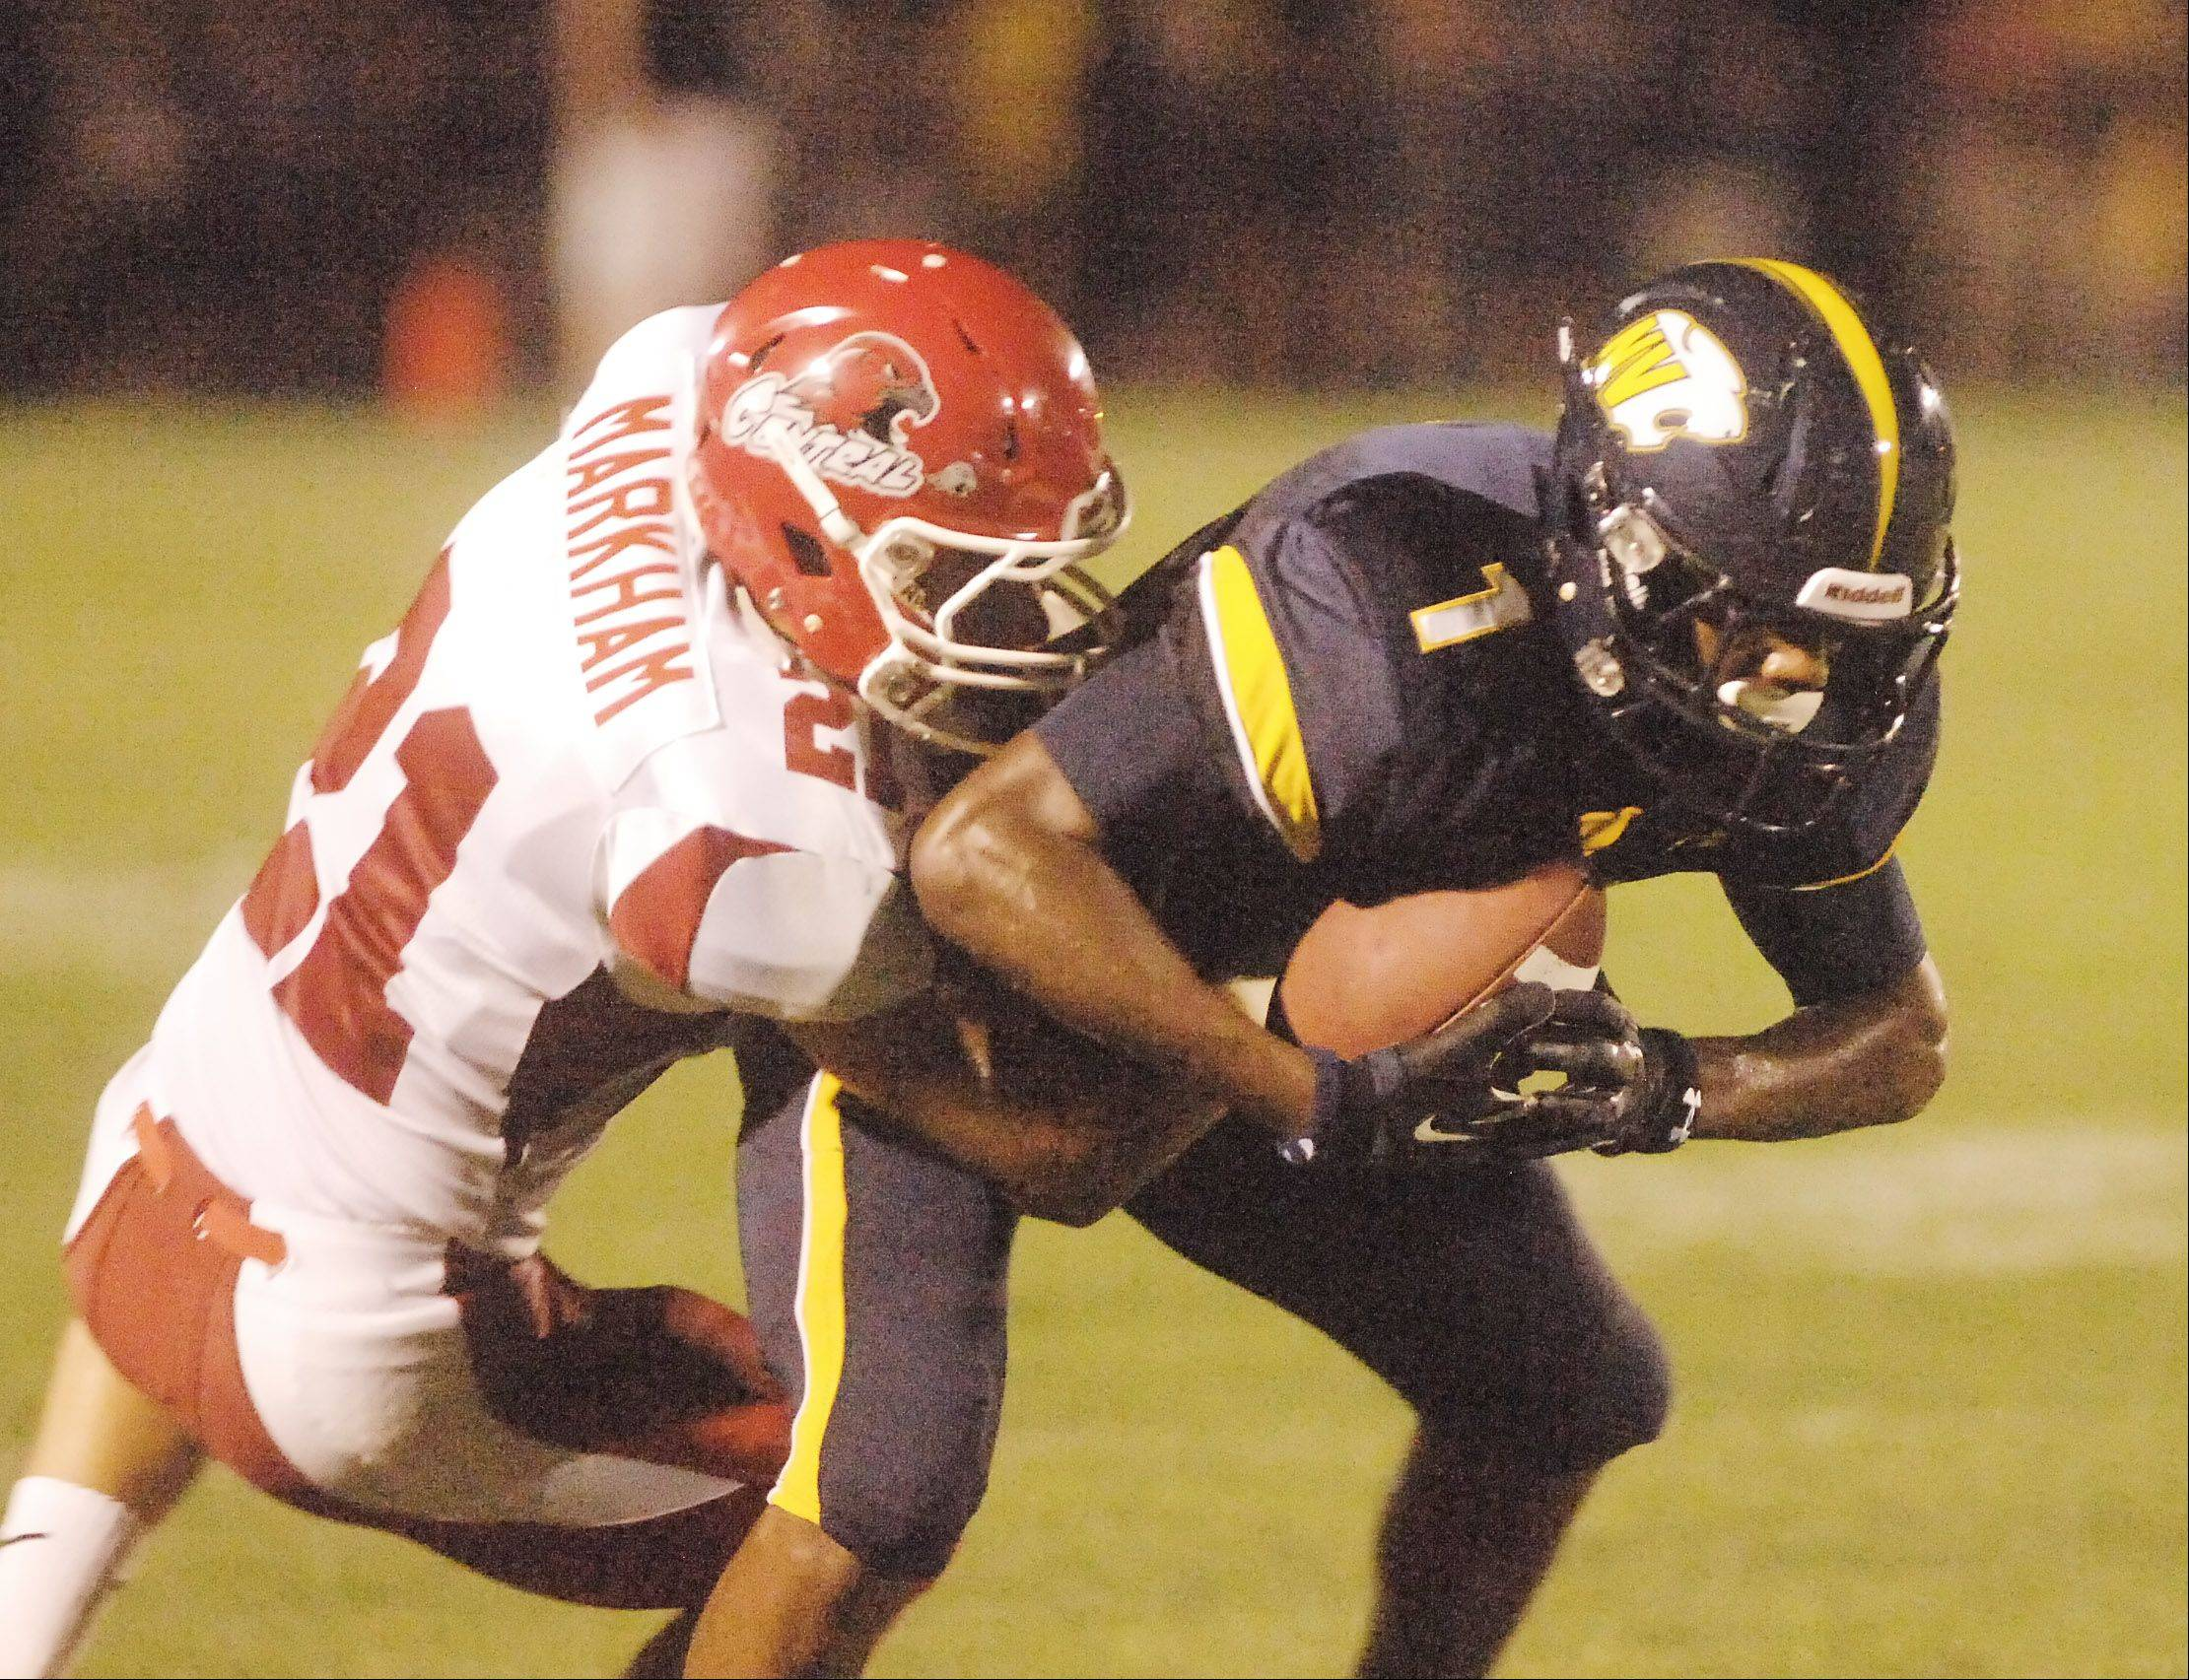 Justin Markham of Naperville Central pulls down Reggie Ervin of Neuqua Valley.